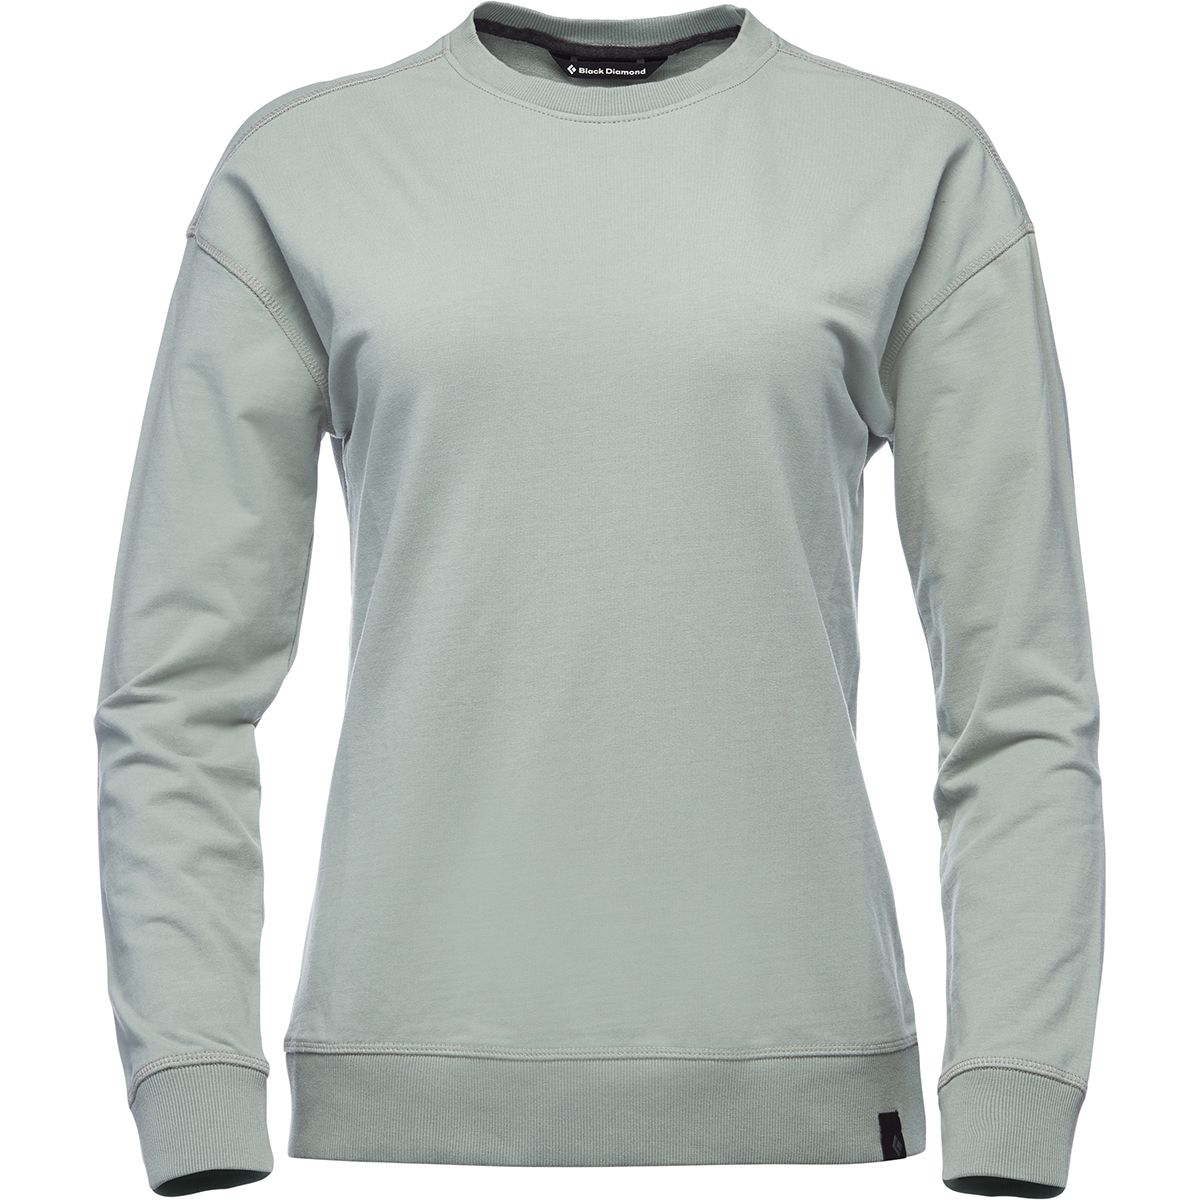 Black Diamond Damen Basis Pullover (Größe XS, Grau) | Pullover > Damen